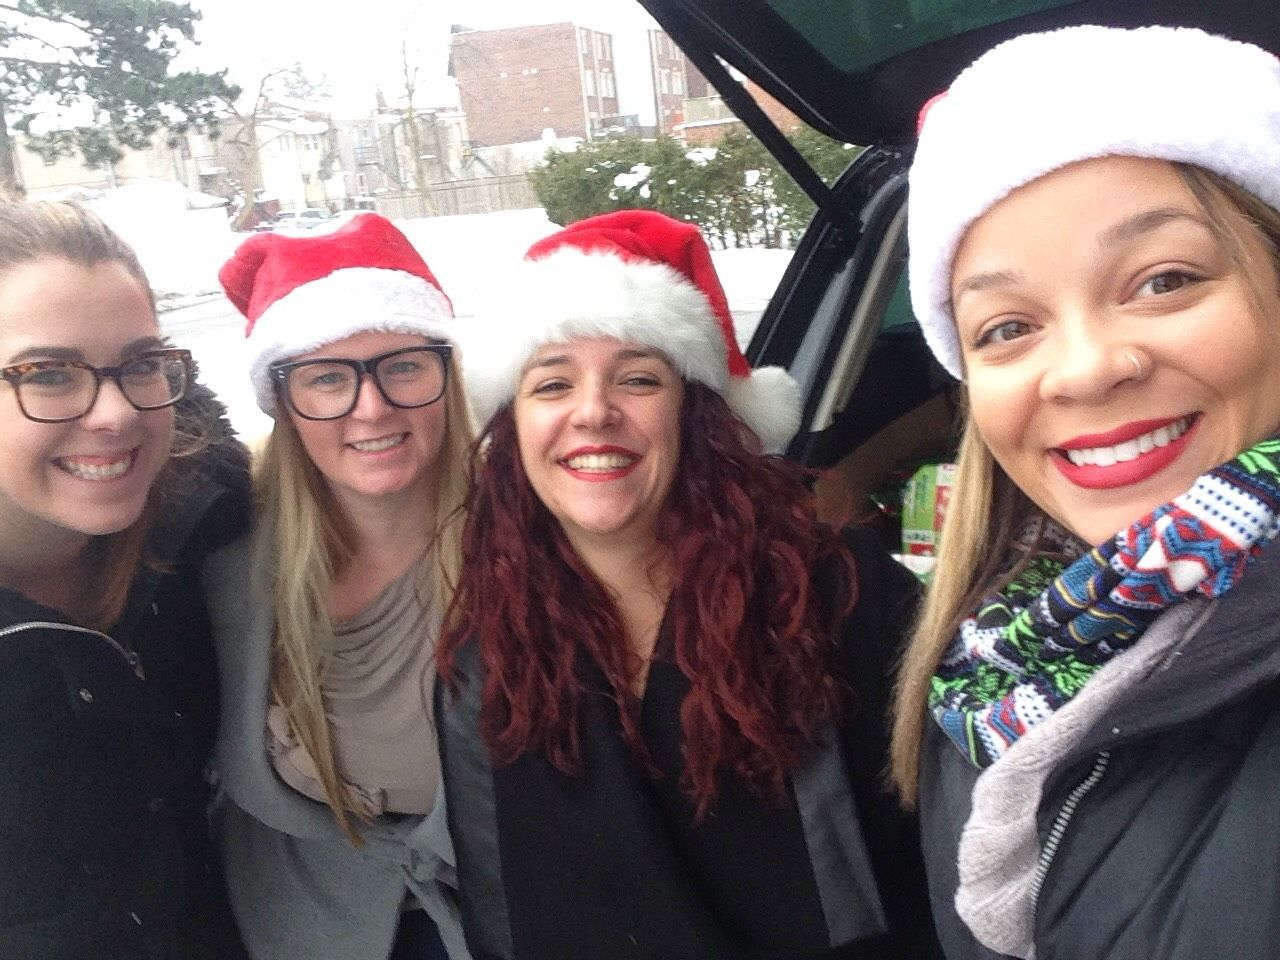 Here's TechWyse's very own and beautiful Angela, Britt, Raquel and Siobhan doing their part as Santa's little helpers!